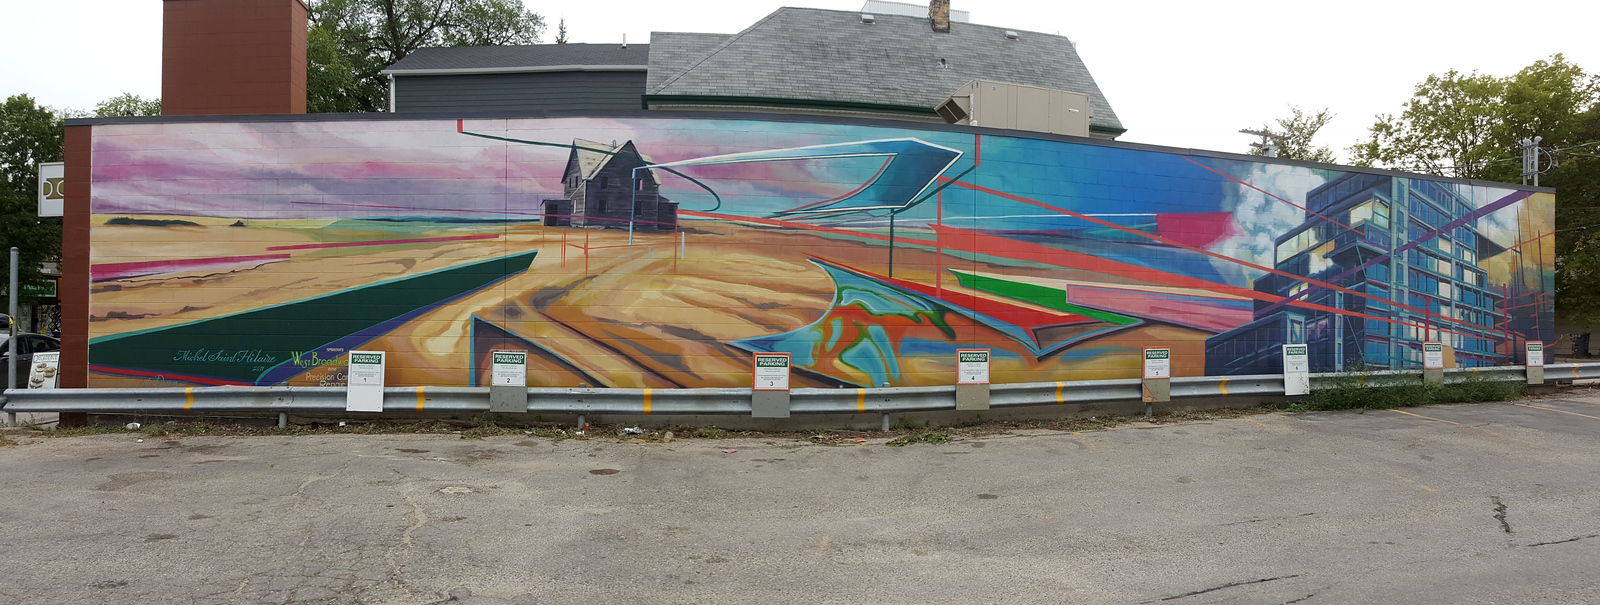 Winnipeg Street Art and Murals - Things to Do in Winnipeg: A Couples Getaway Guide